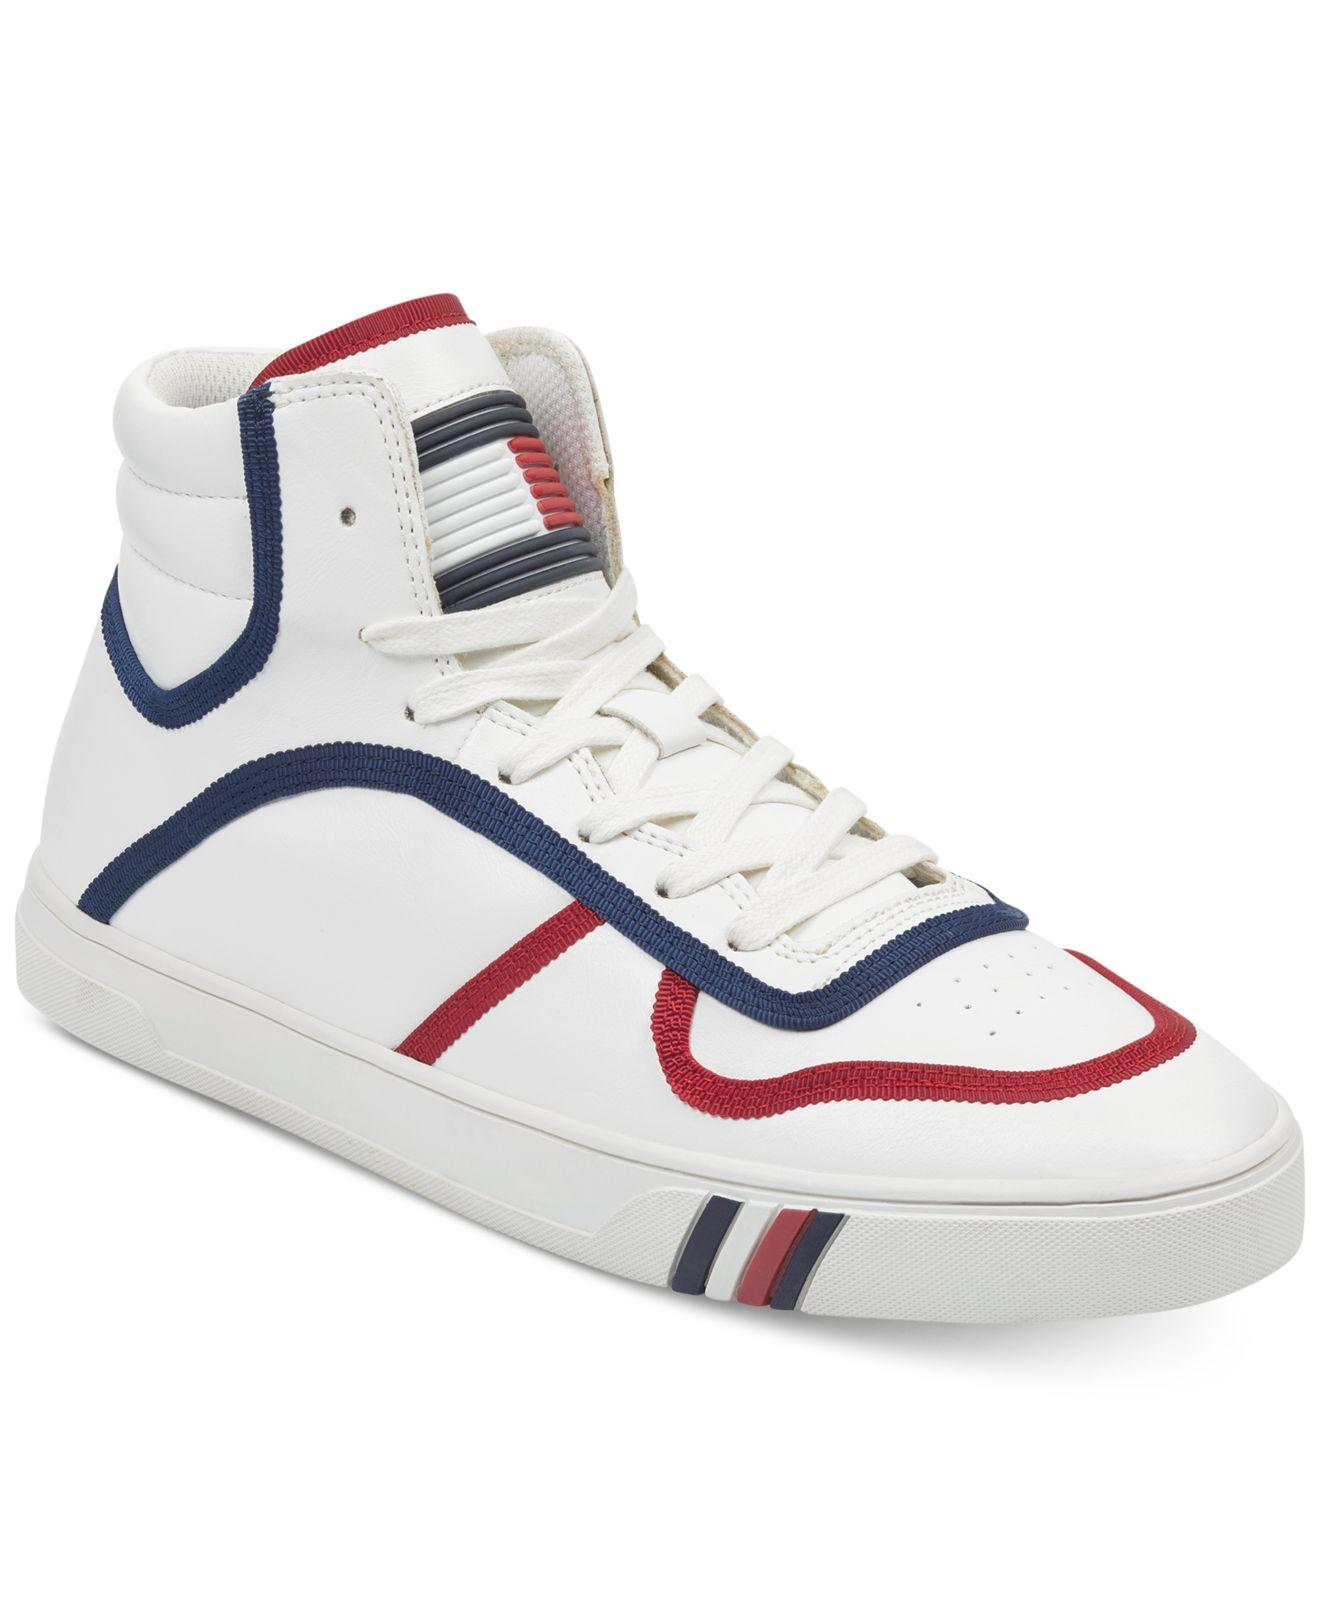 b744274ec Tommy Hilfiger Japan High Top Sneakers in White for Men - Lyst